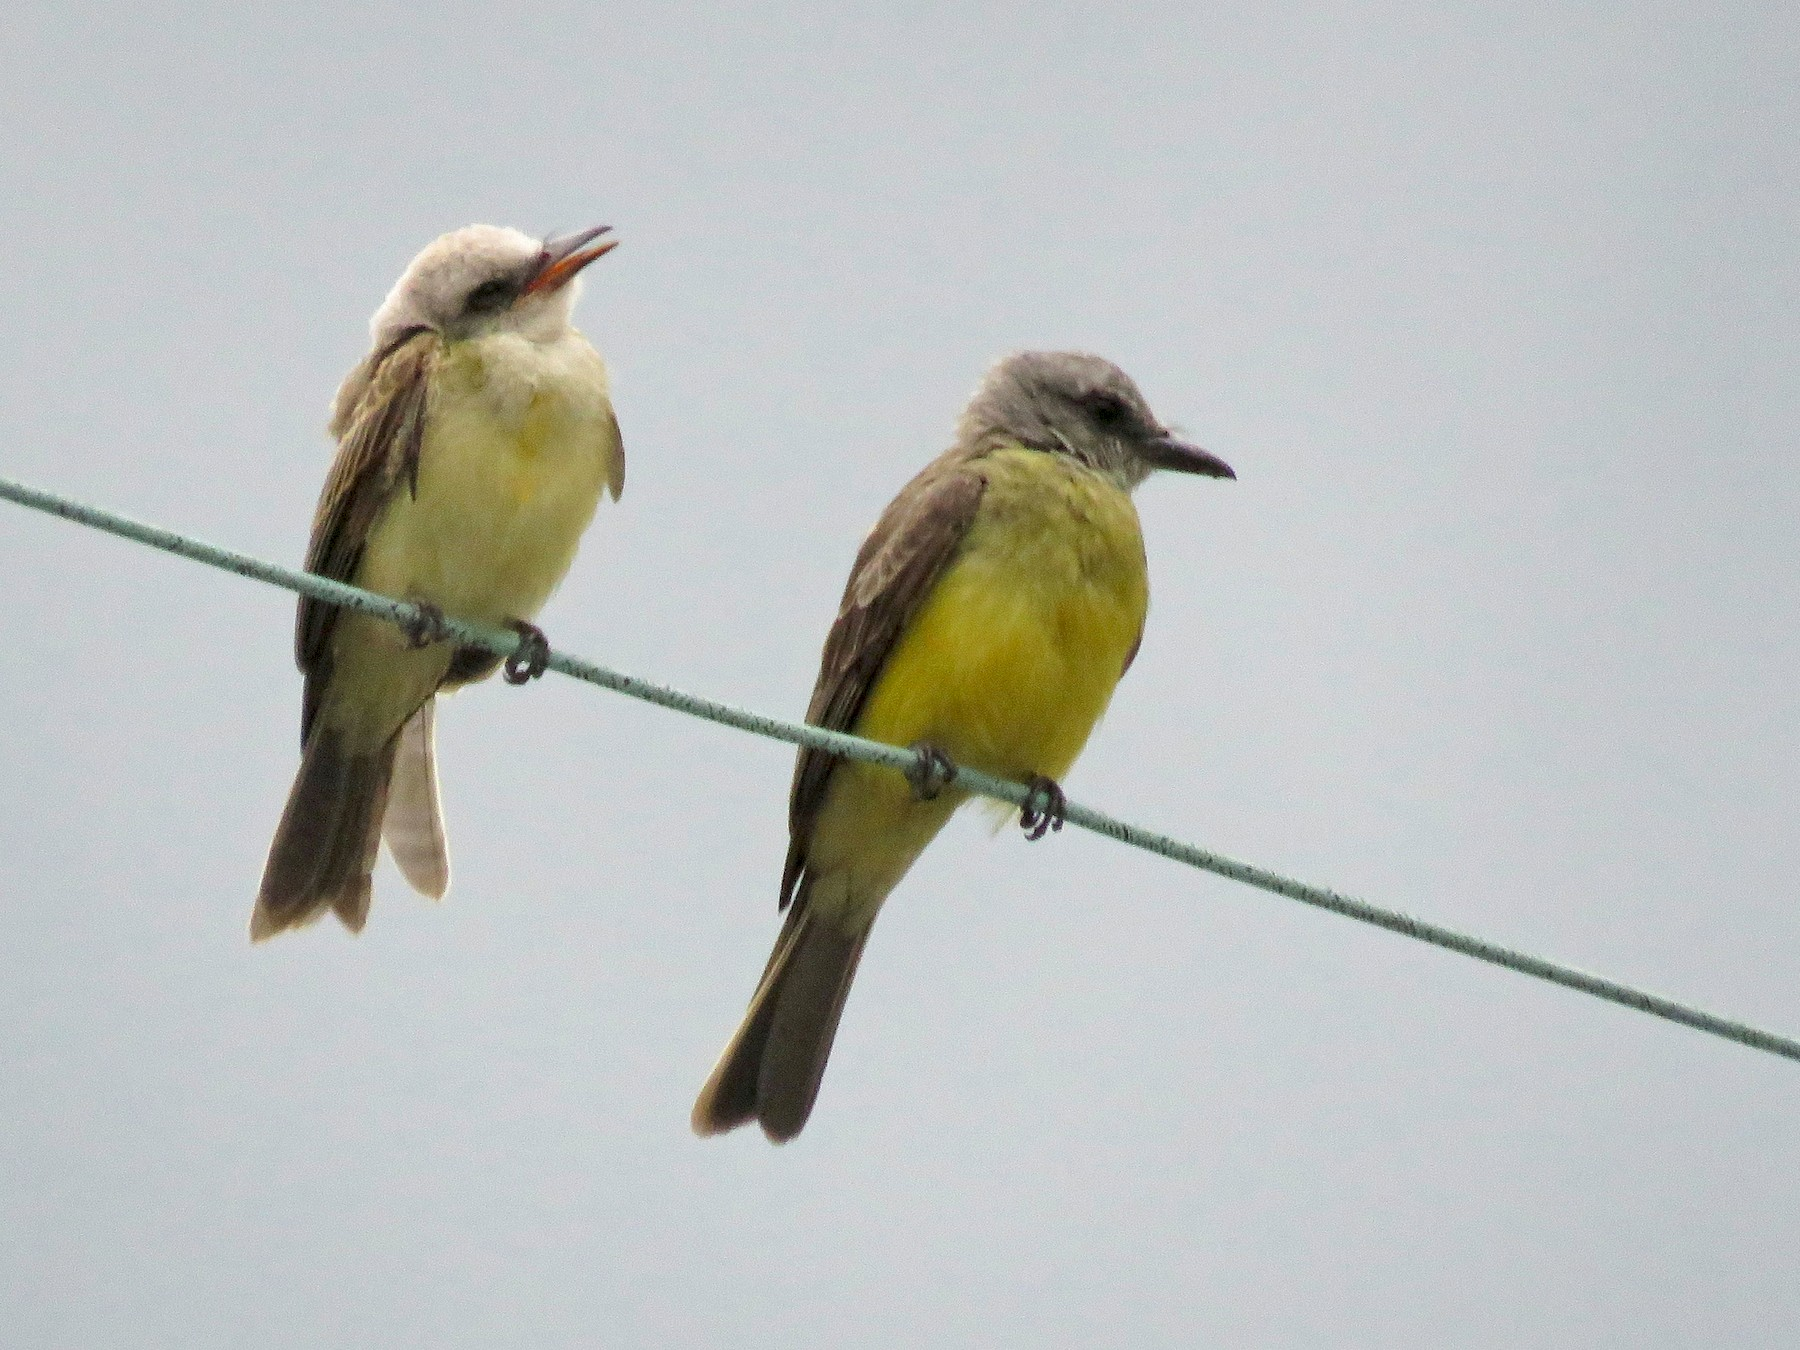 Tropical Kingbird - Rolando Jordan